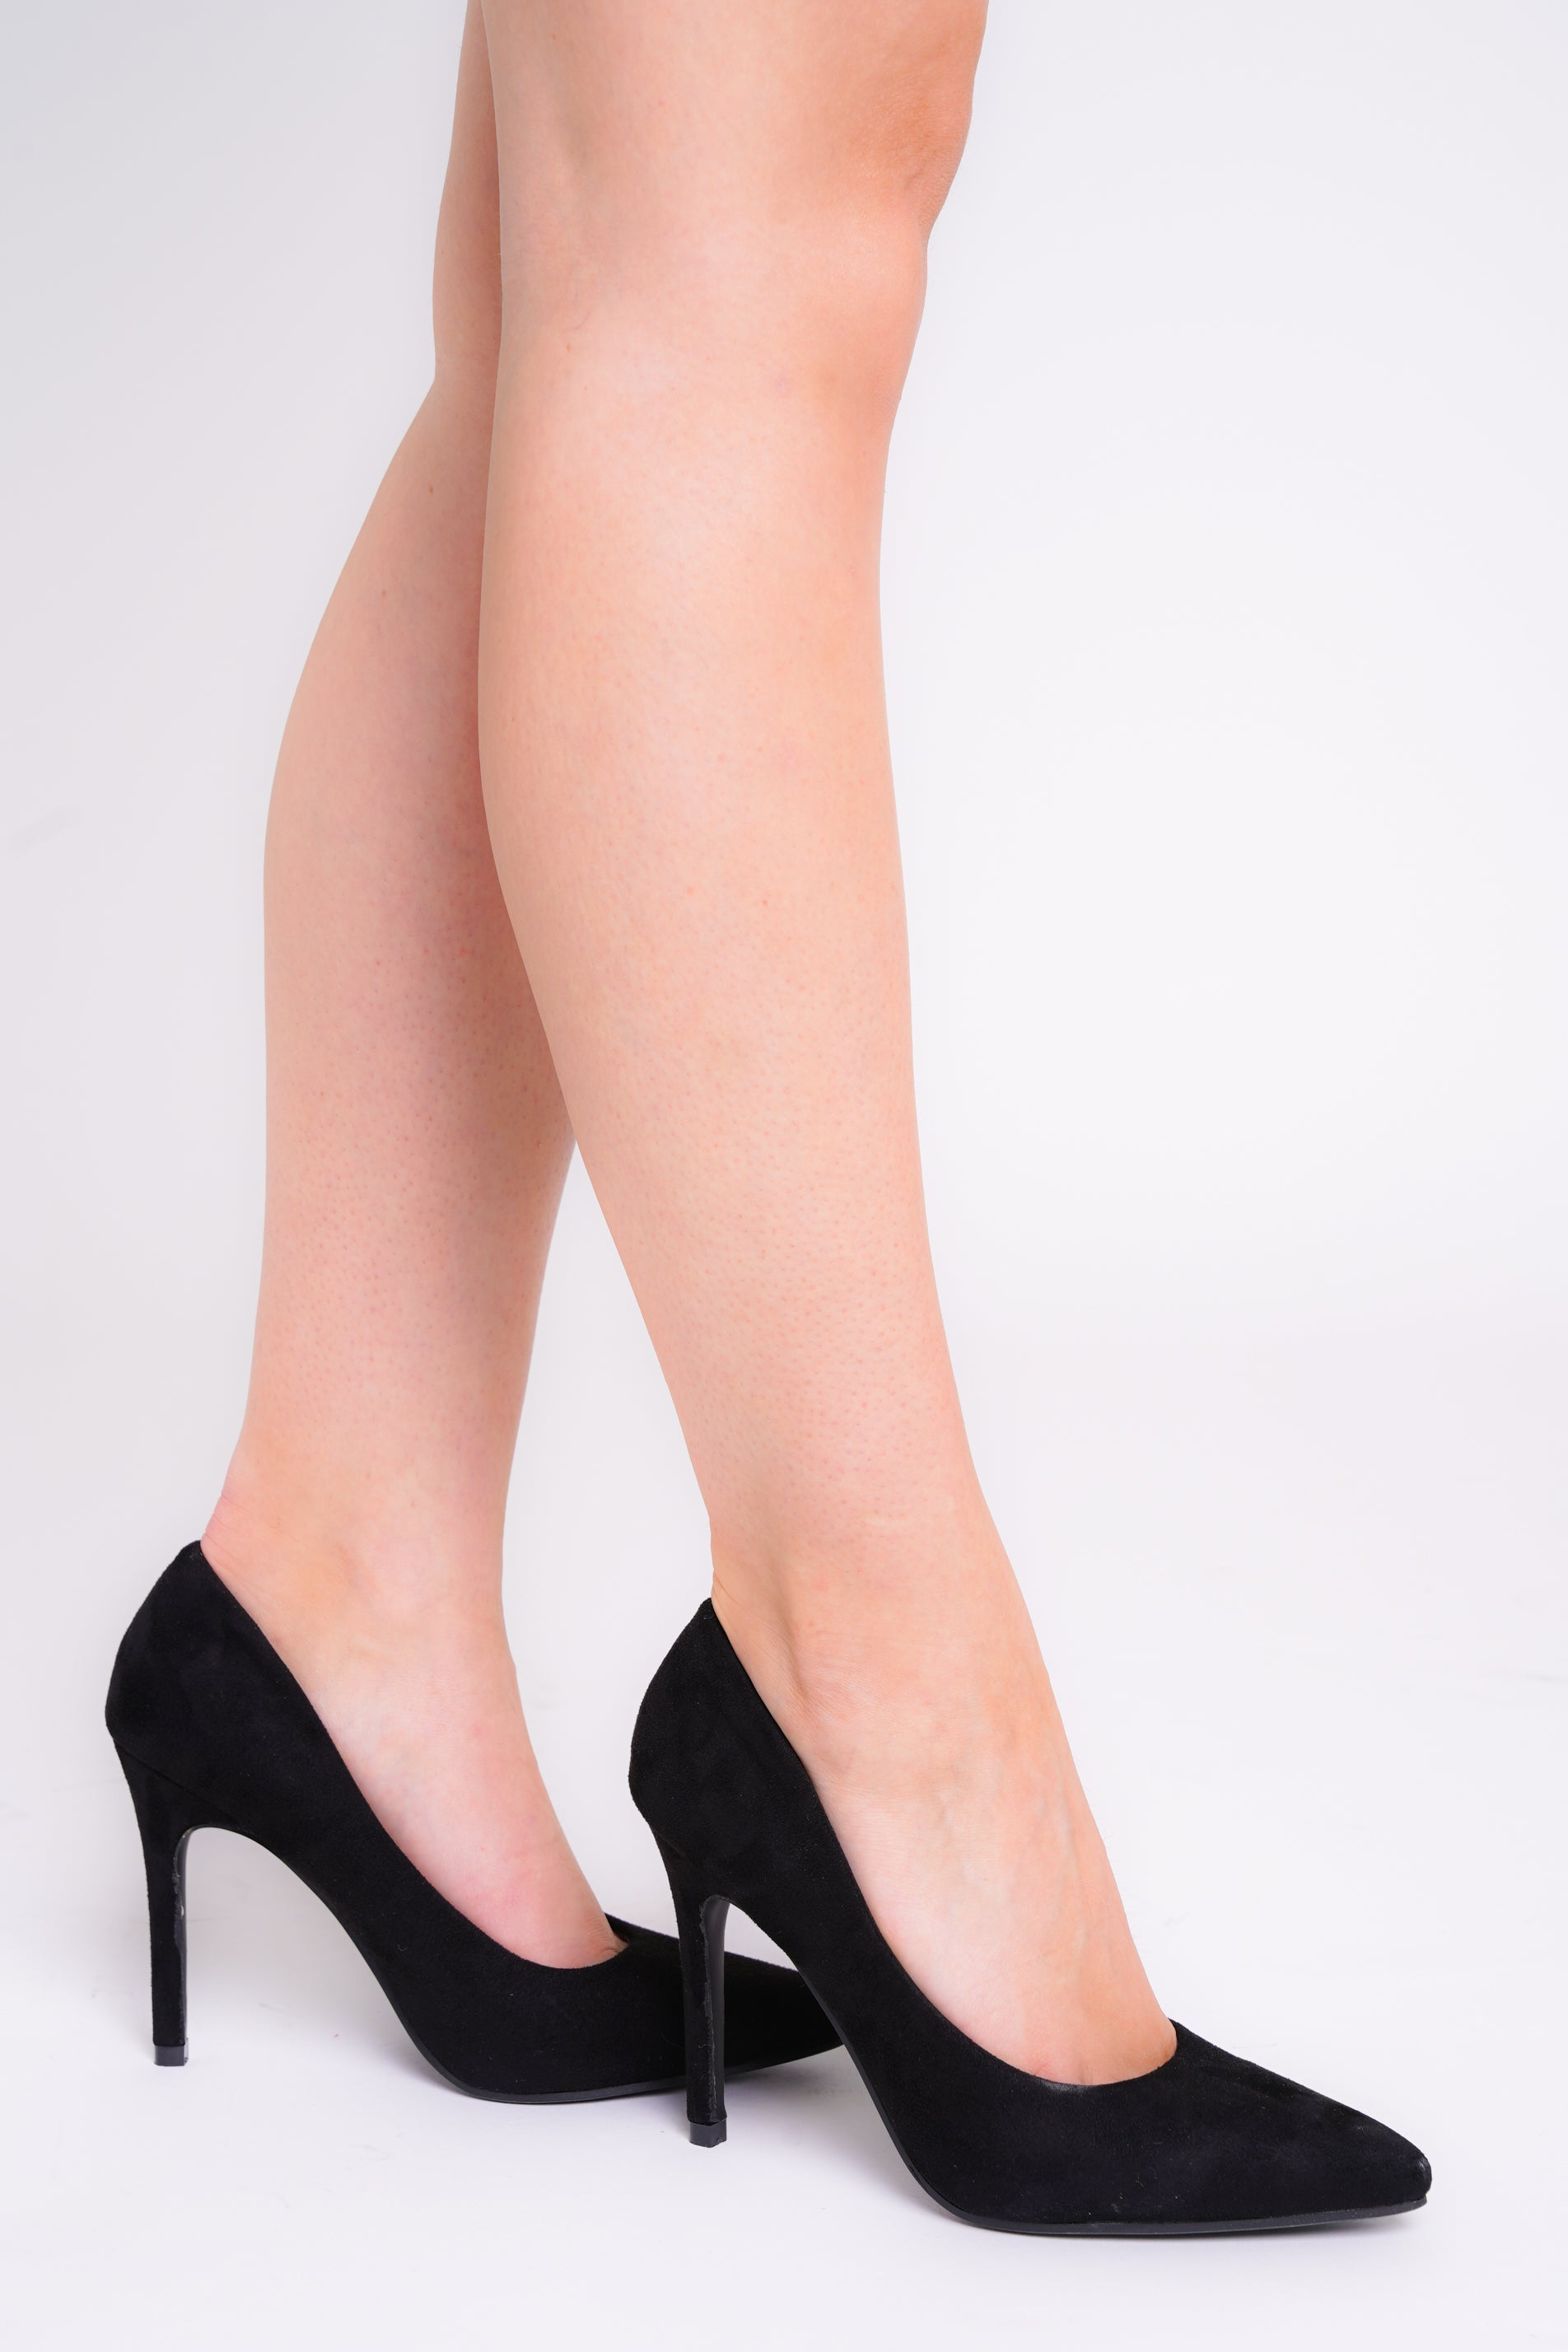 Amara Faux Suede Glitter Pointed Toe Heels